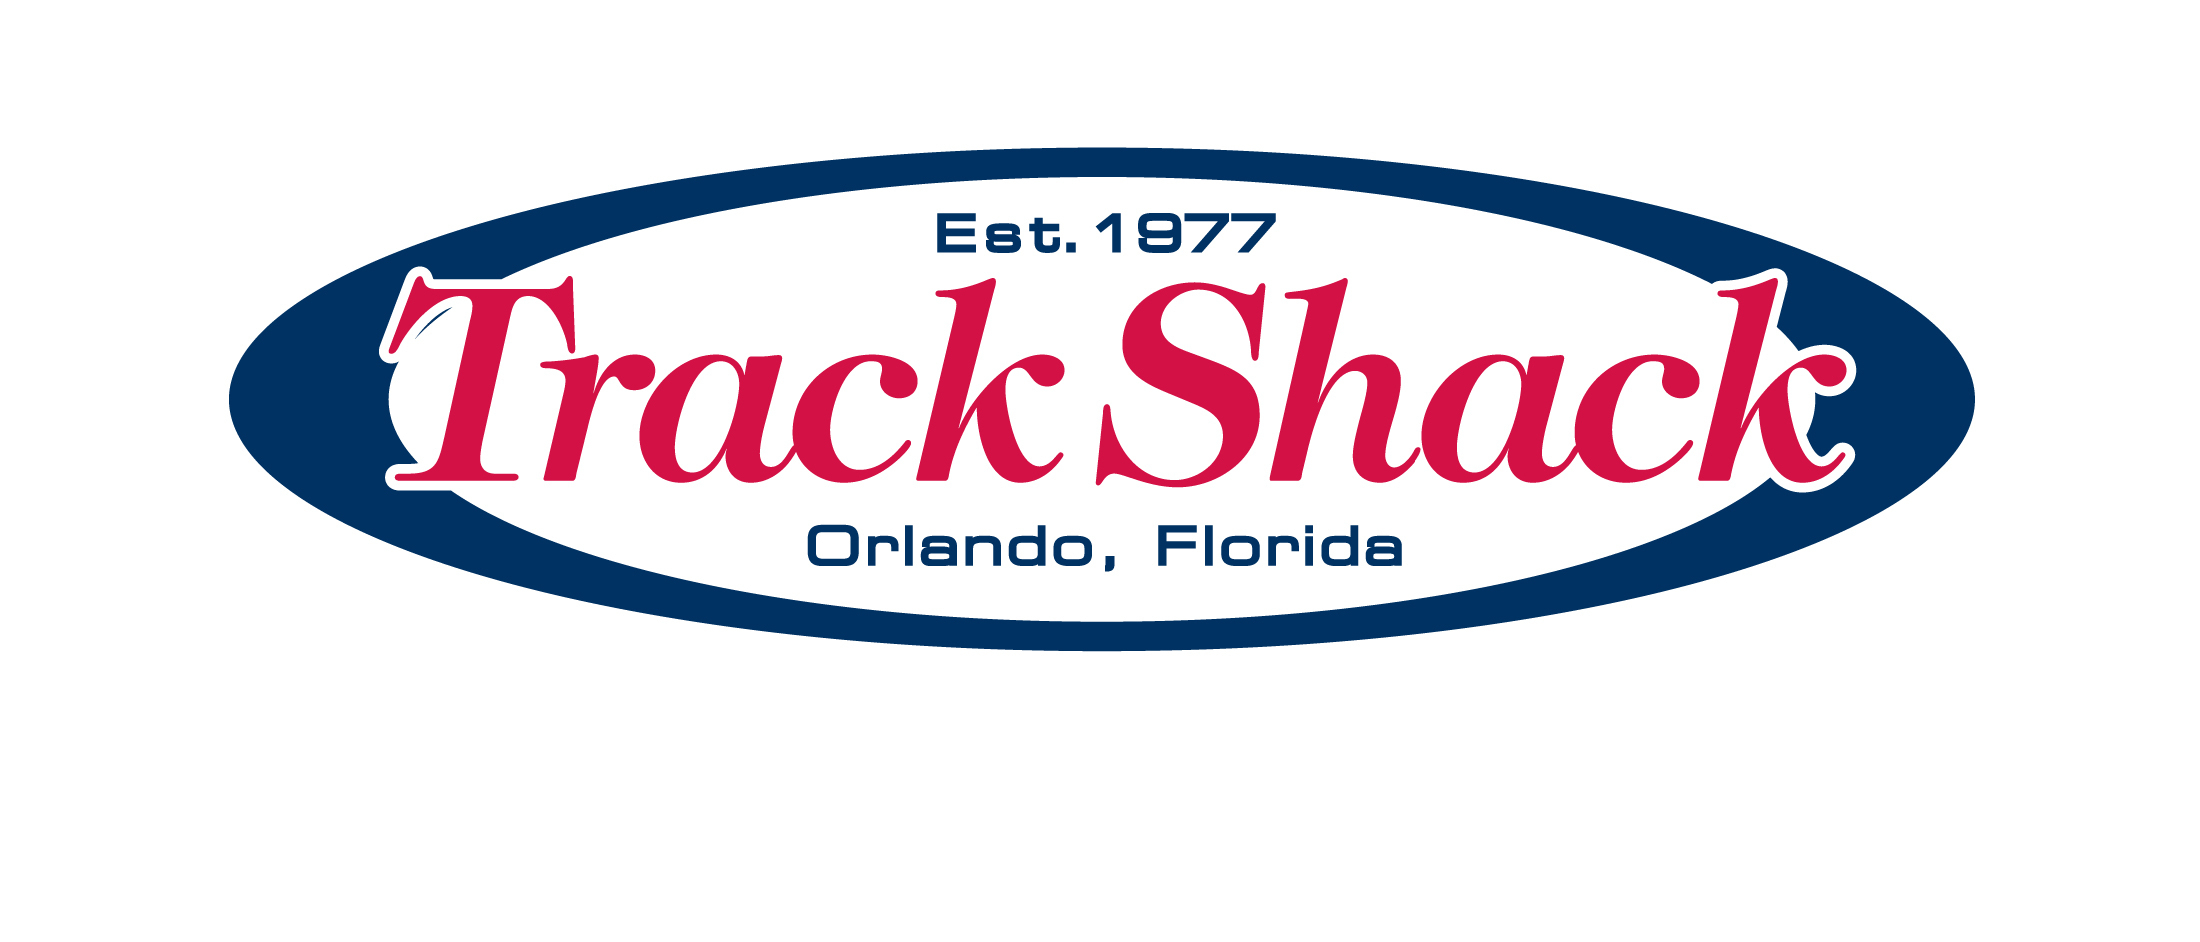 Track Shack Events  logo